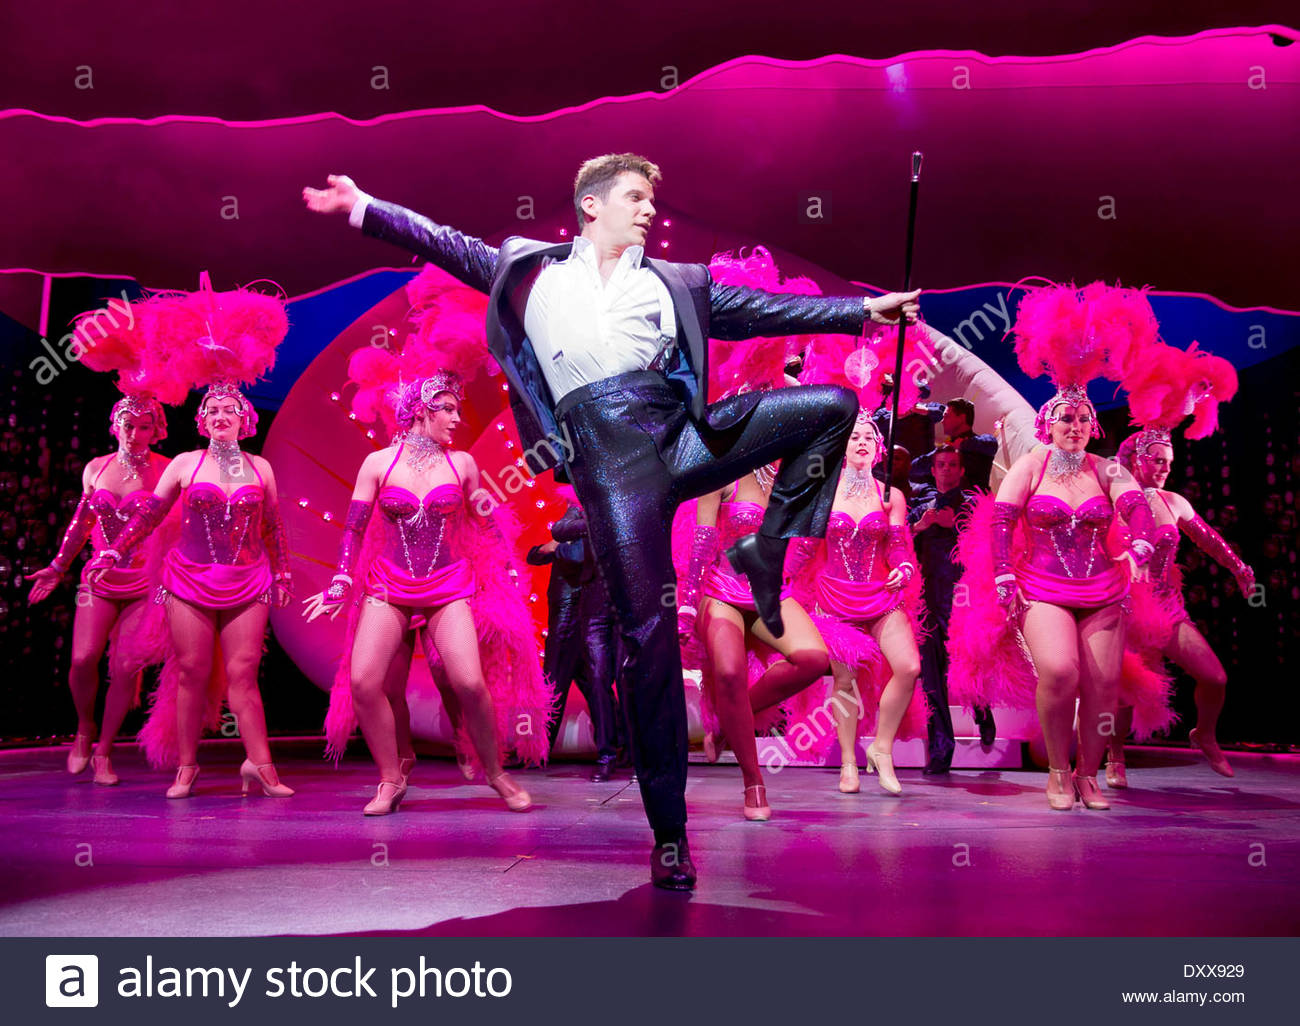 I Can't Sing ! by Harry Hill and Steve Brown, directed by Sean Foley. With Nigel Harman as Simon. Opens at The London Palladium on 26/3/14 - Stock Image